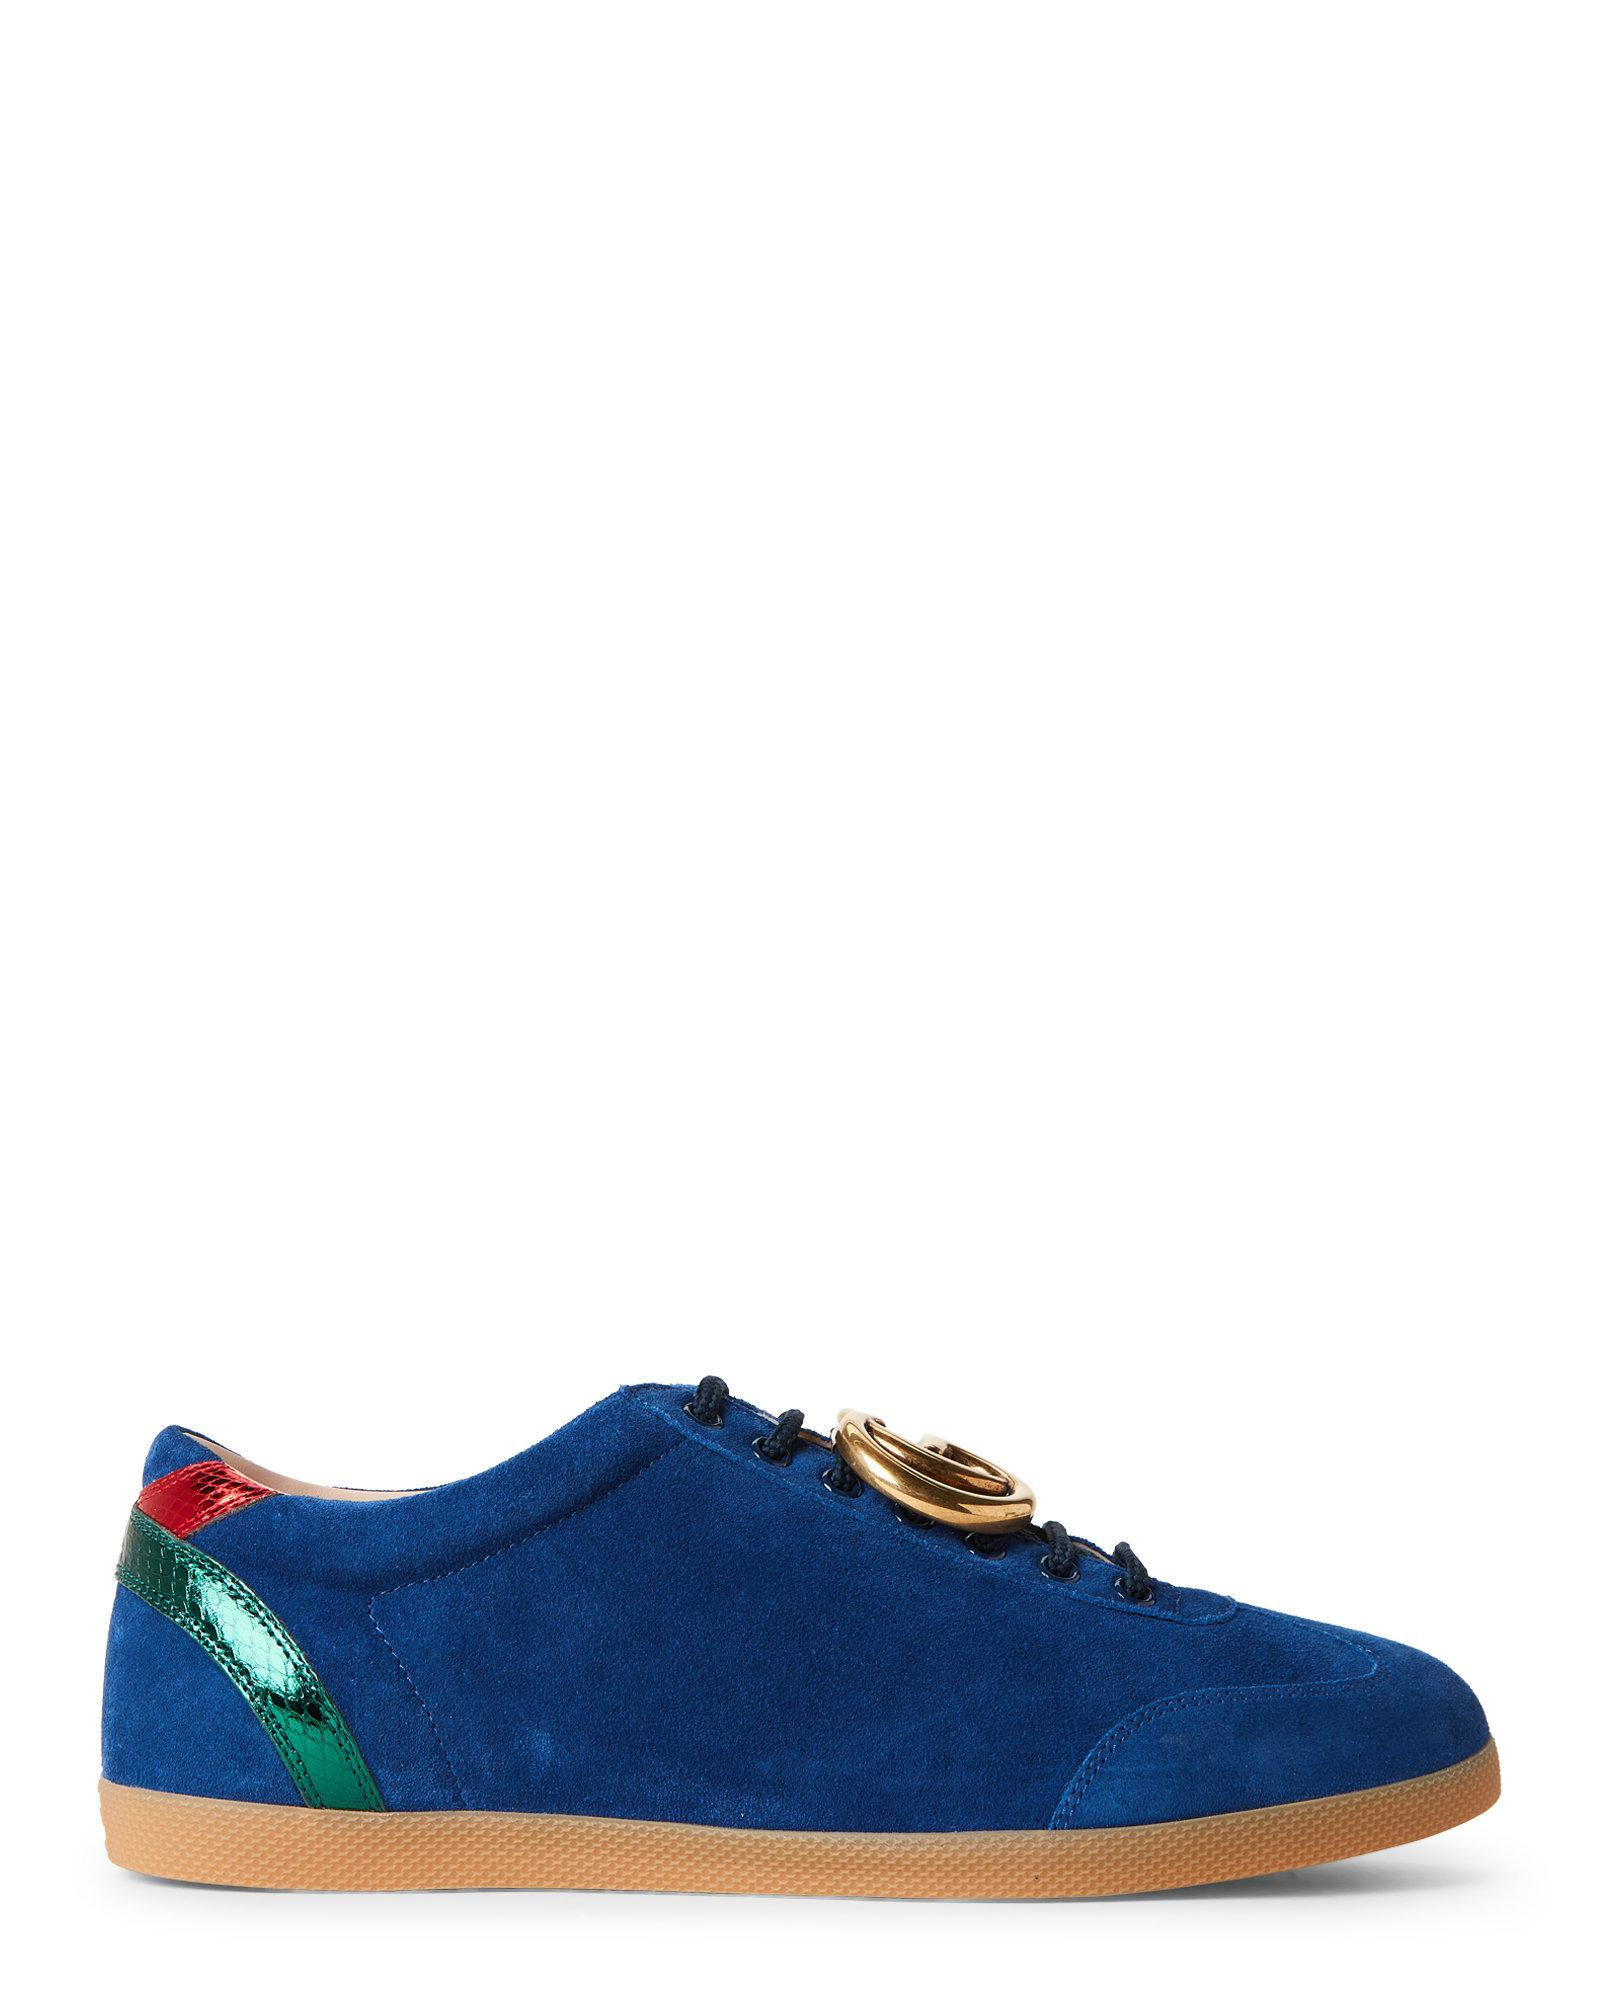 7914c827cdb Lyst - Gucci Royale   Red Softy Tek Sneakers in Blue for Men